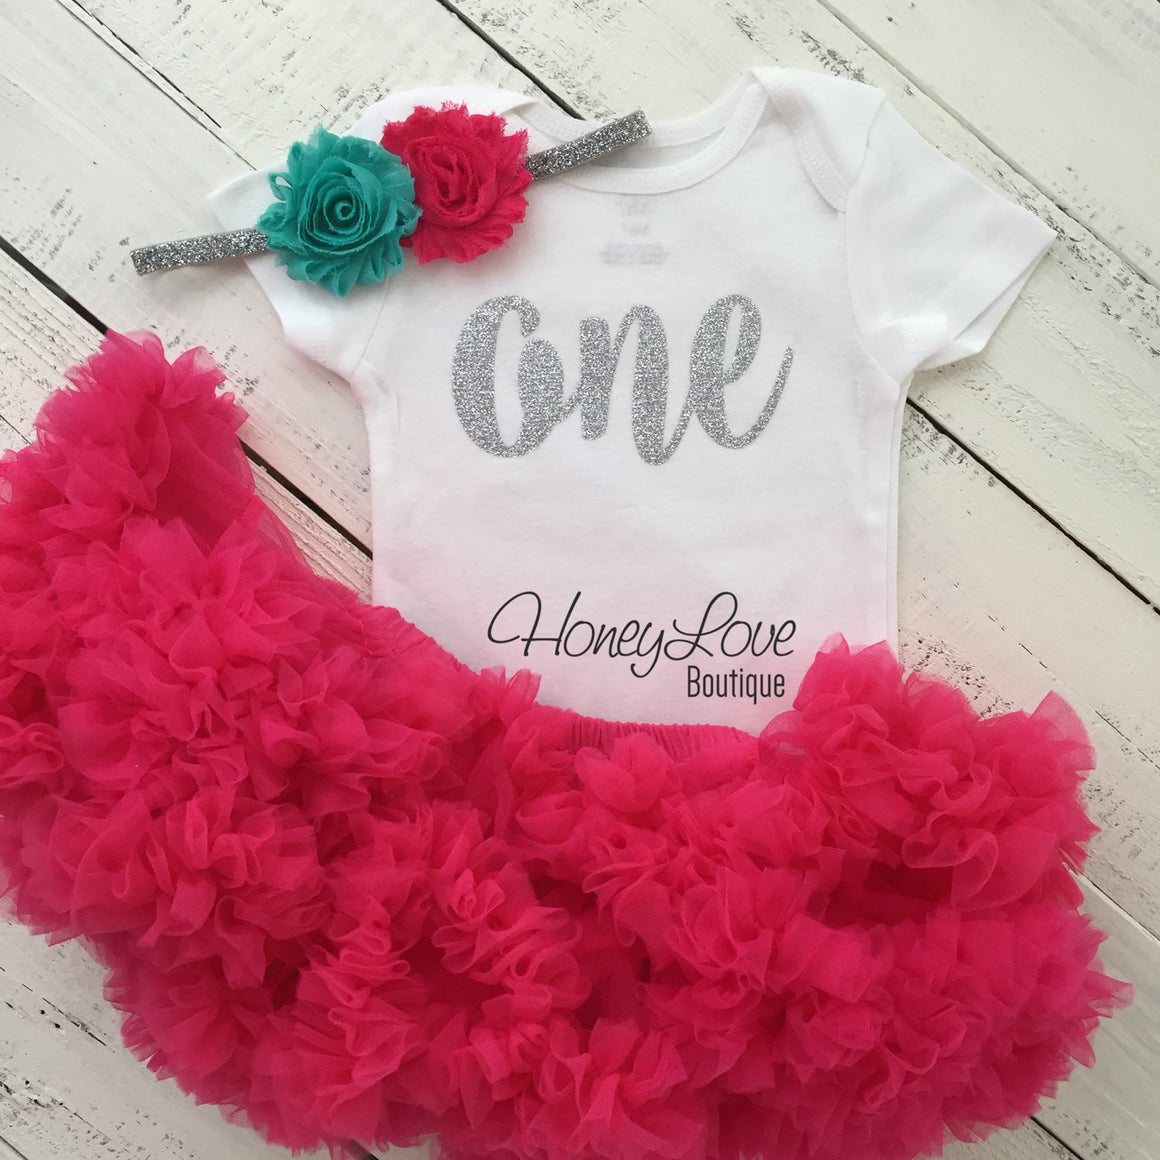 One - 1st Birthday Outfit - Silver or Gold and watermelon pink/turquoise